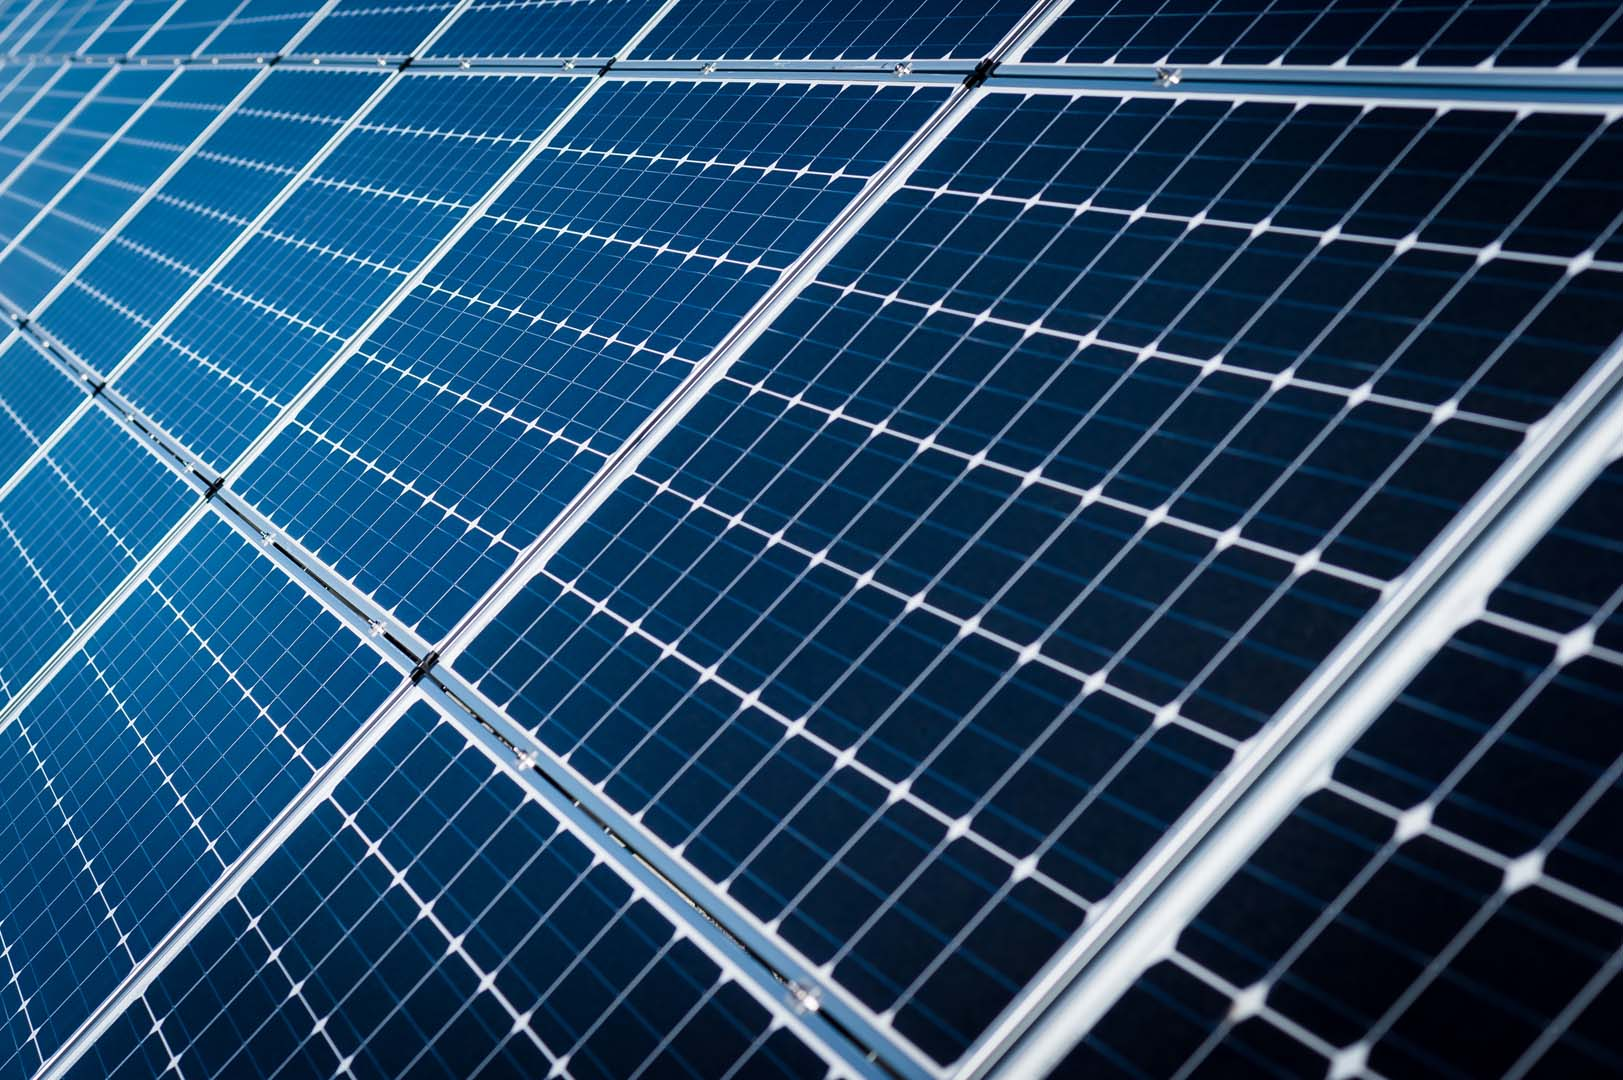 The 25MW project will be comprised of 79,000 PV panels. Image: Jack Haskell / Flickr